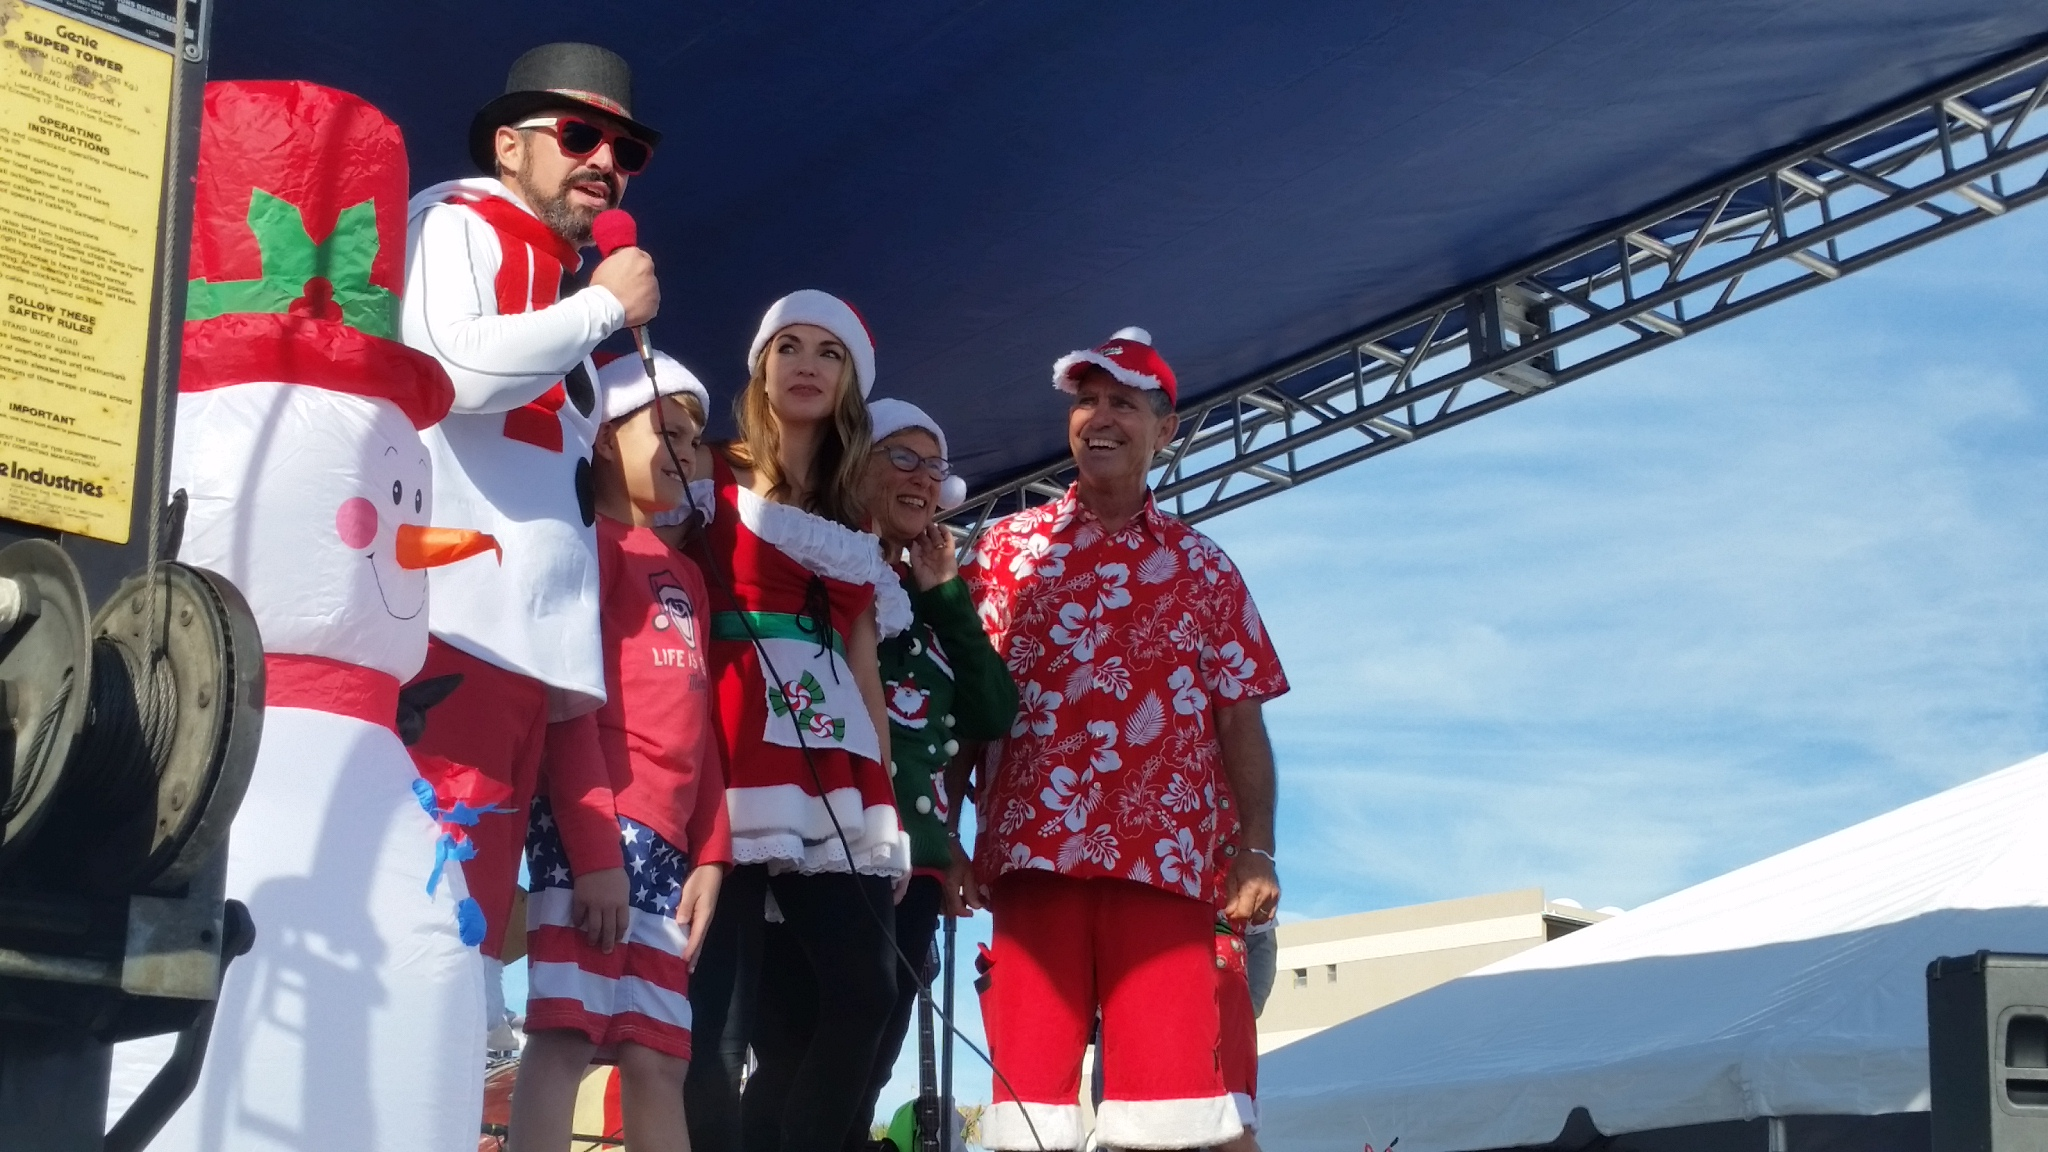 George Trosset (far right) and his family sending the Santas to start surfing